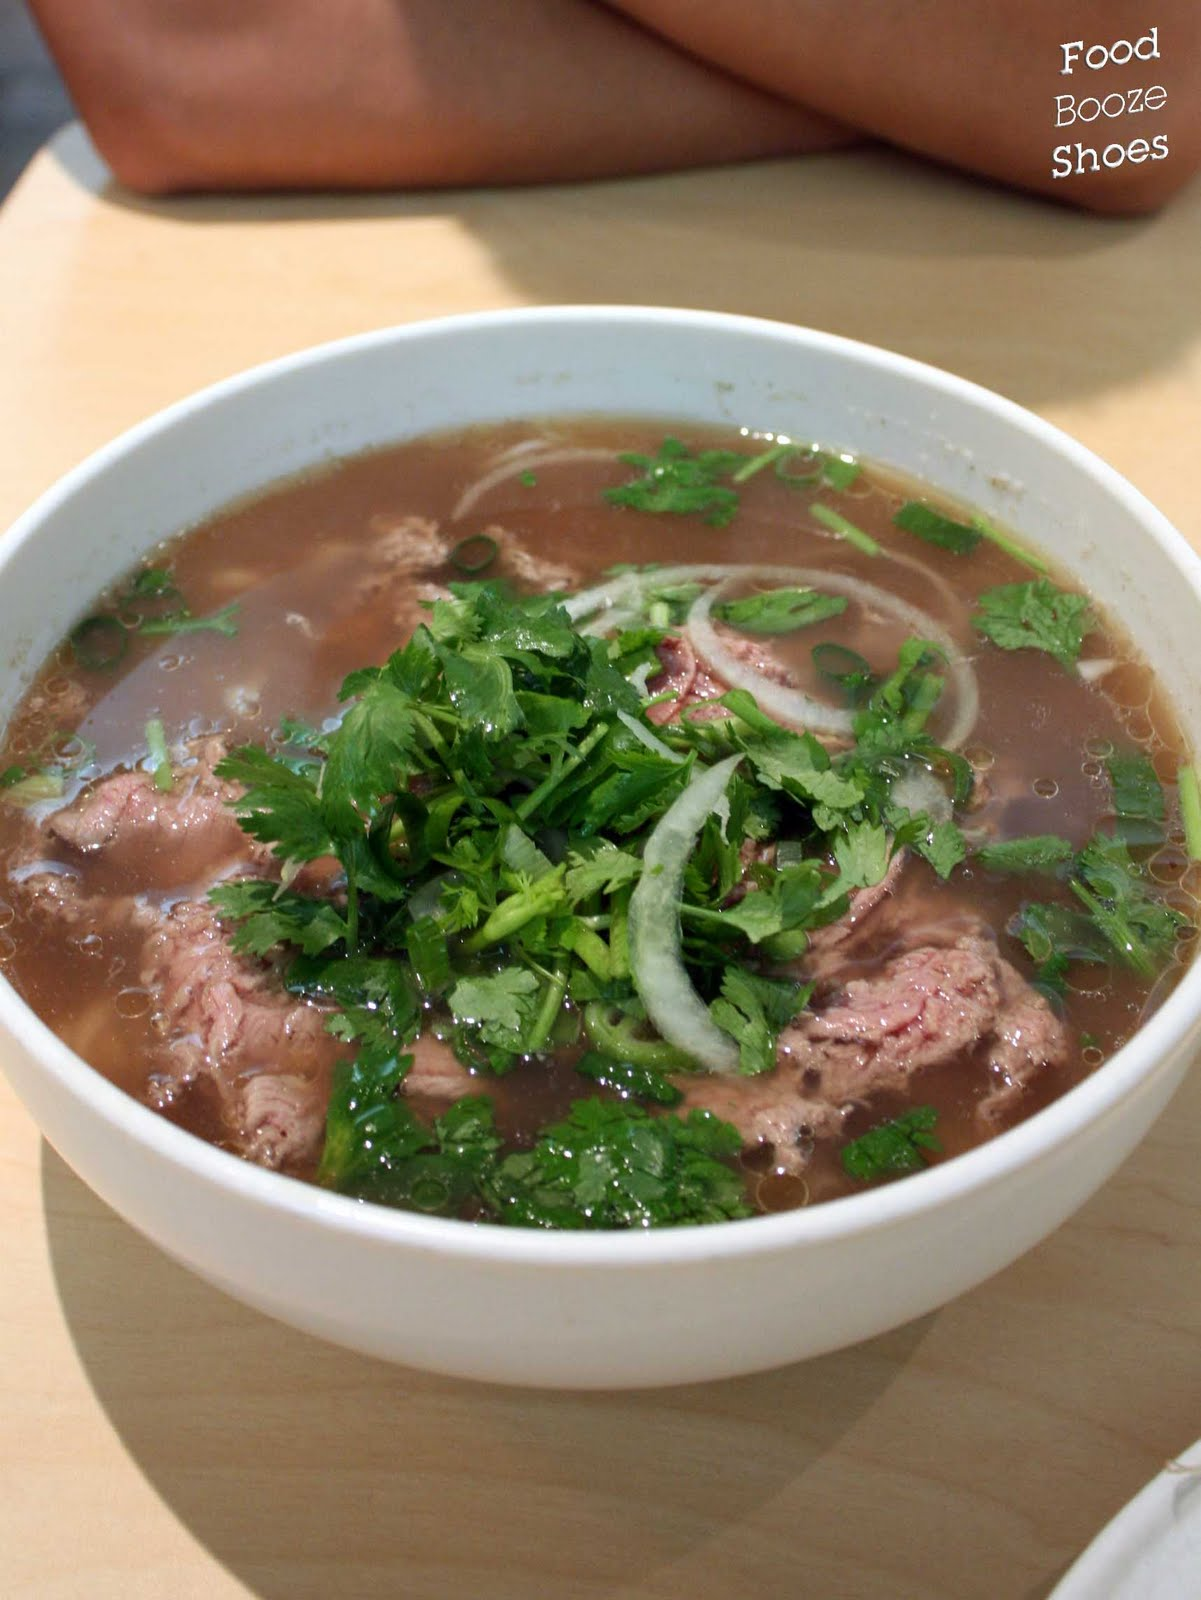 Food, booze and shoes: An Restaurant: Pho for you, pho for me